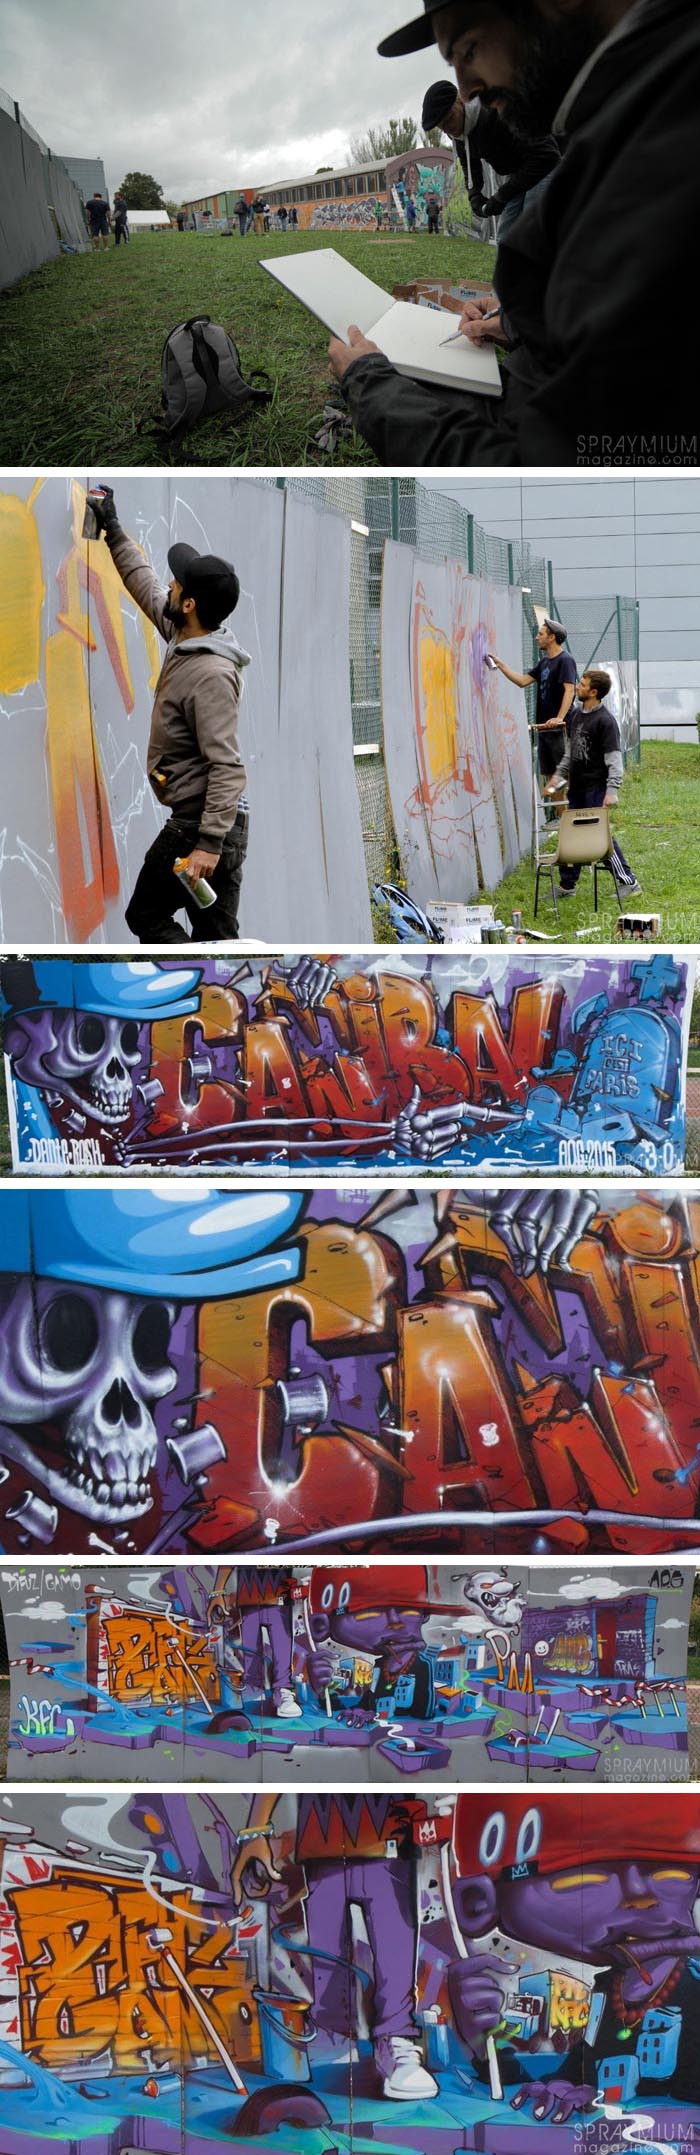 artauxgants festival graffiti writing art11 spraycanart dante rosh gamo difuz spraymium